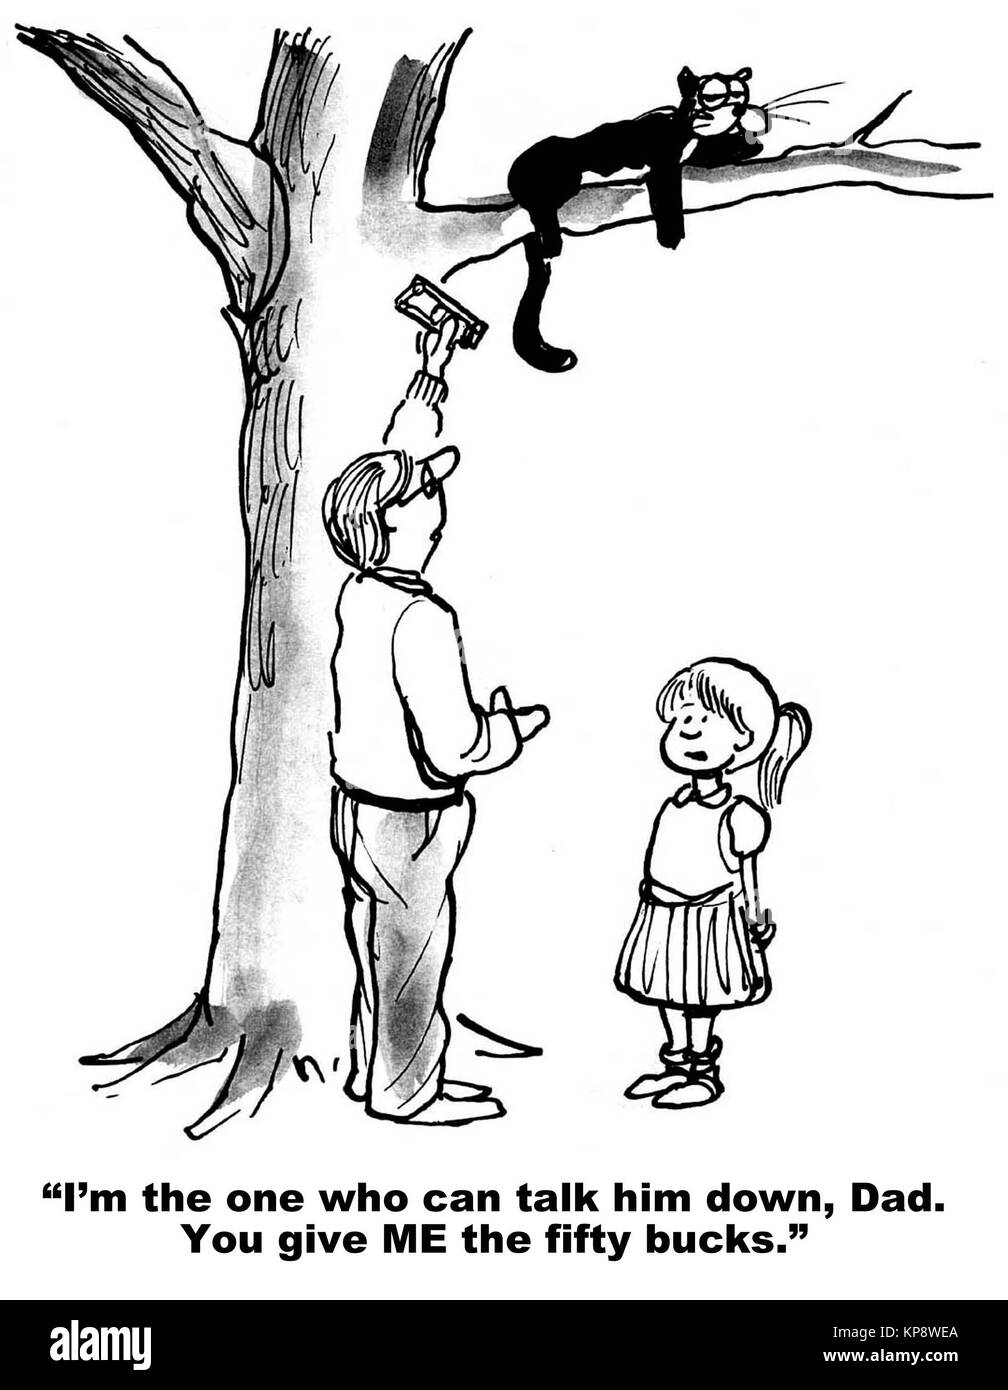 A cat is stuck high in a tree and the girl wants $50 from her father to talk the cat down - Stock Image